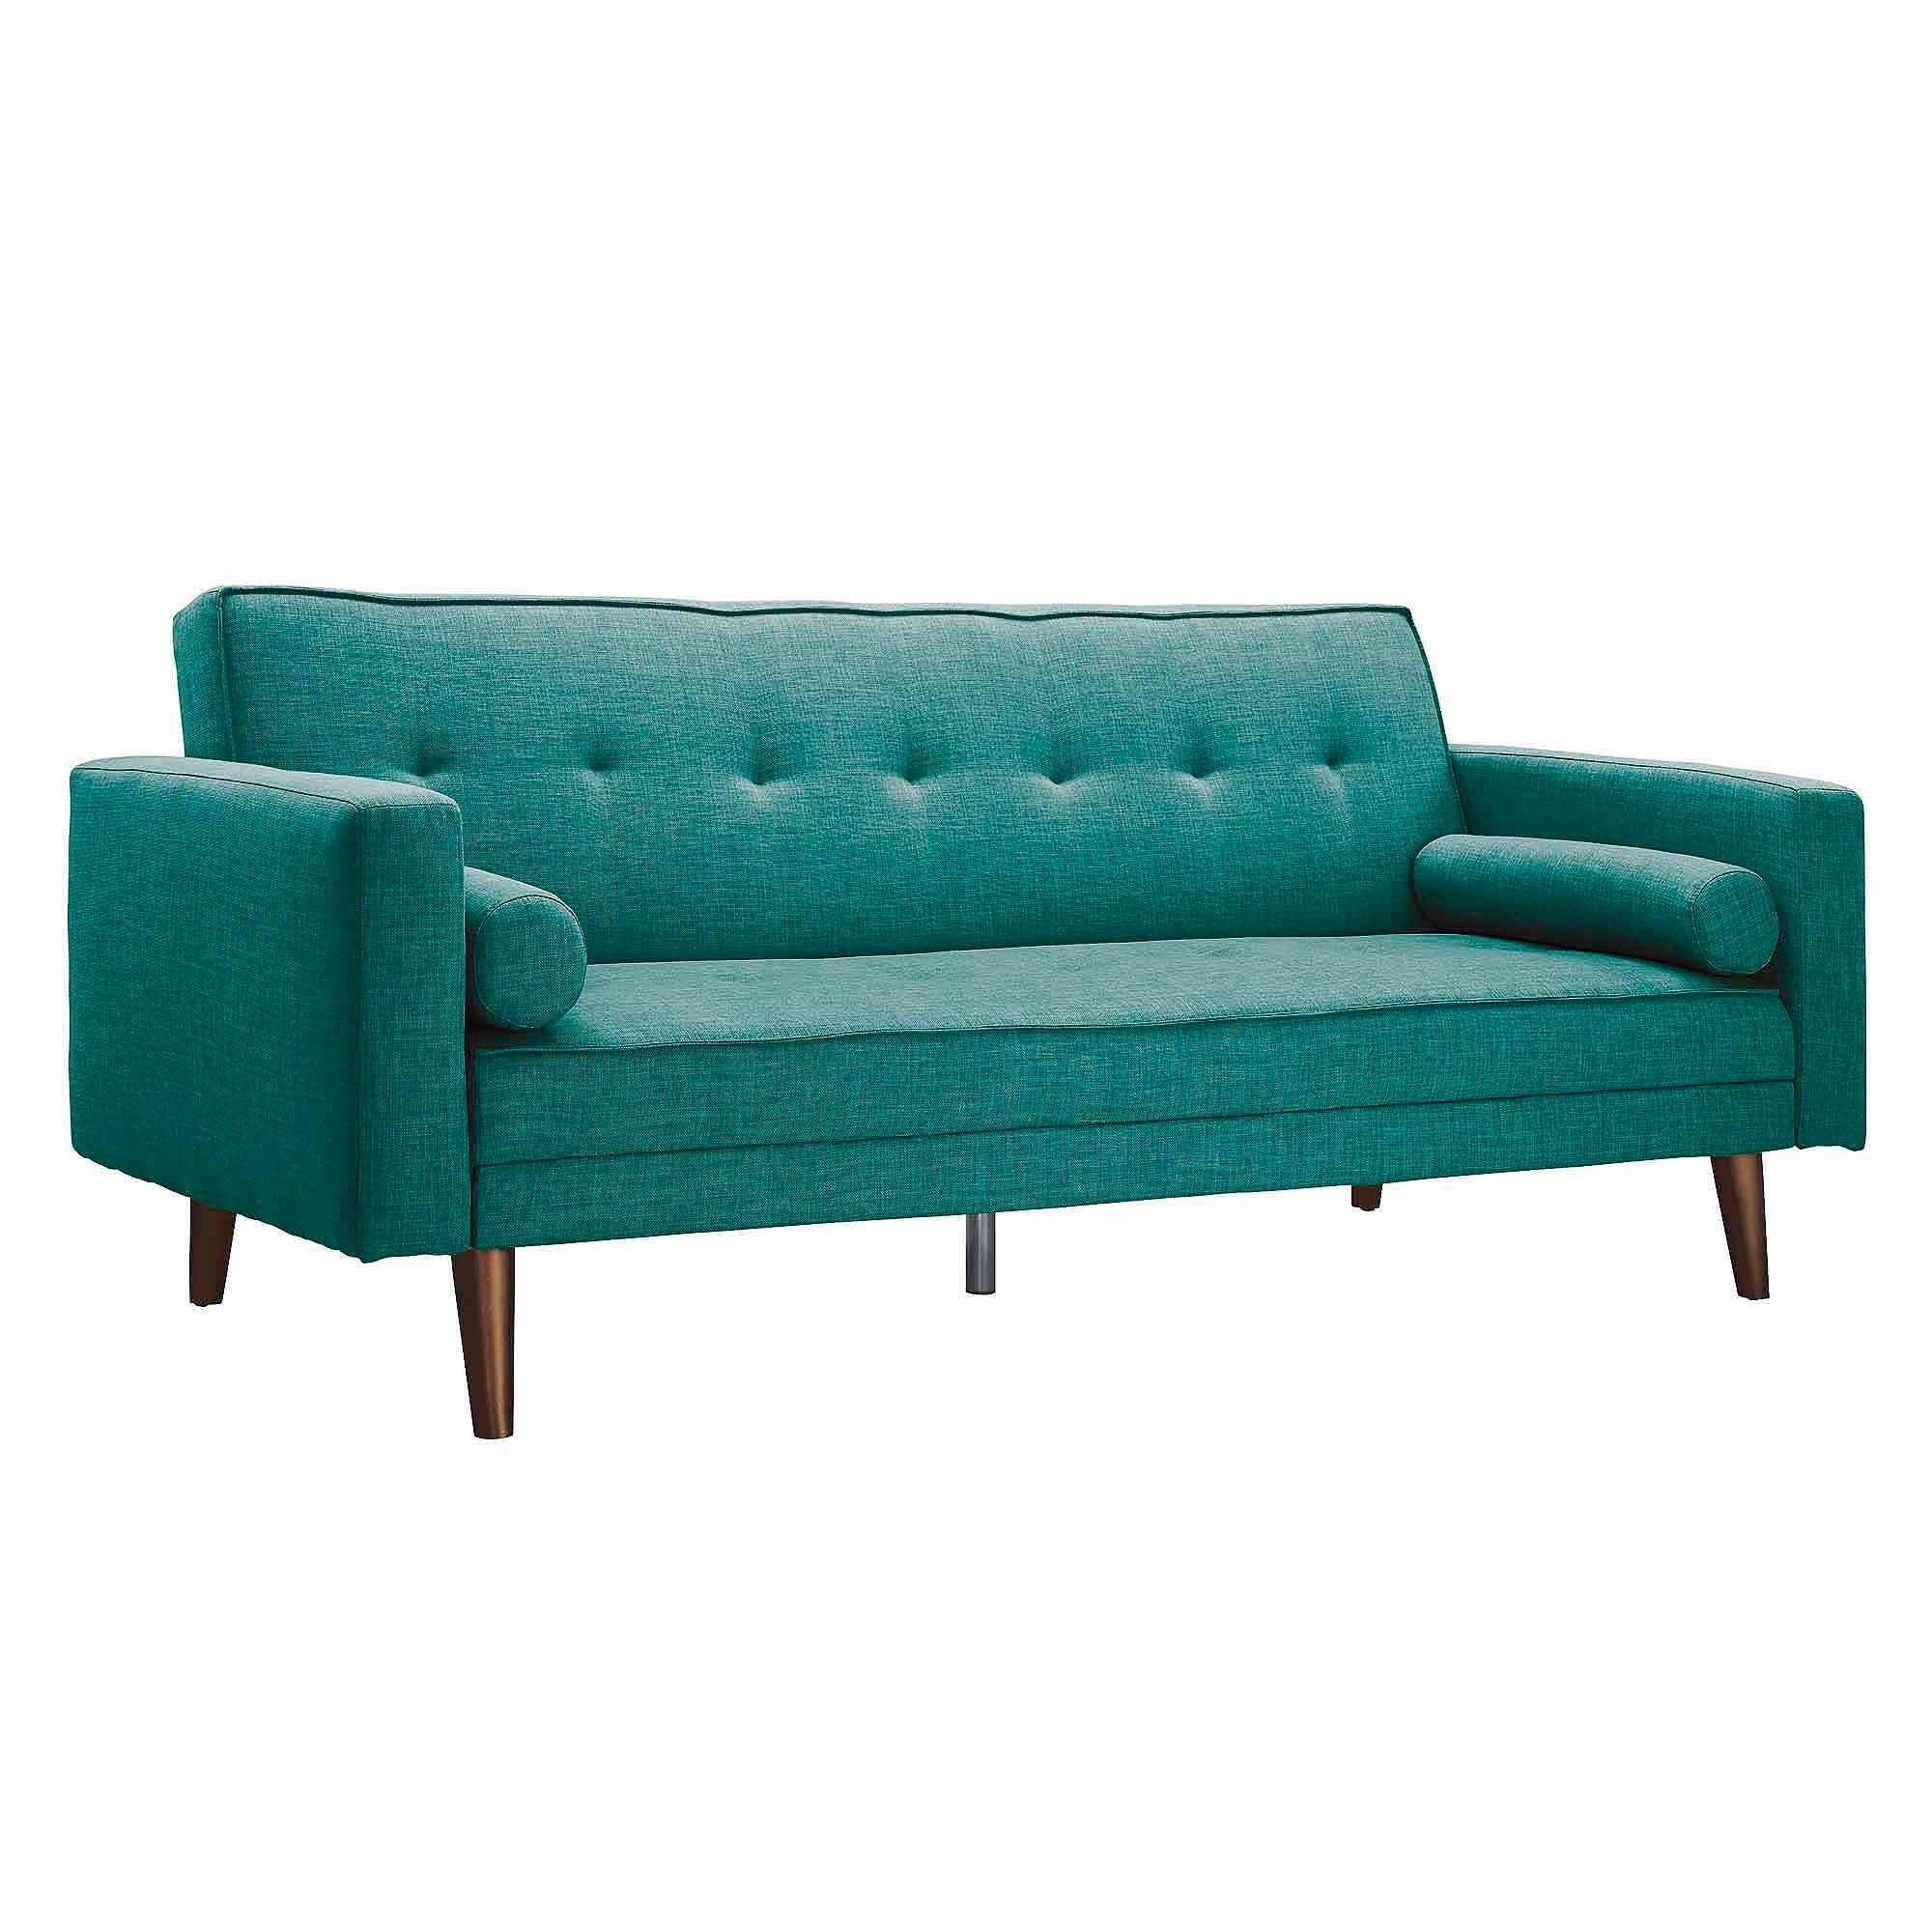 Furniture: Comfort Inflatable Furniture Walmart For Your Relaxing With Aqua Sofa Beds (Image 11 of 20)